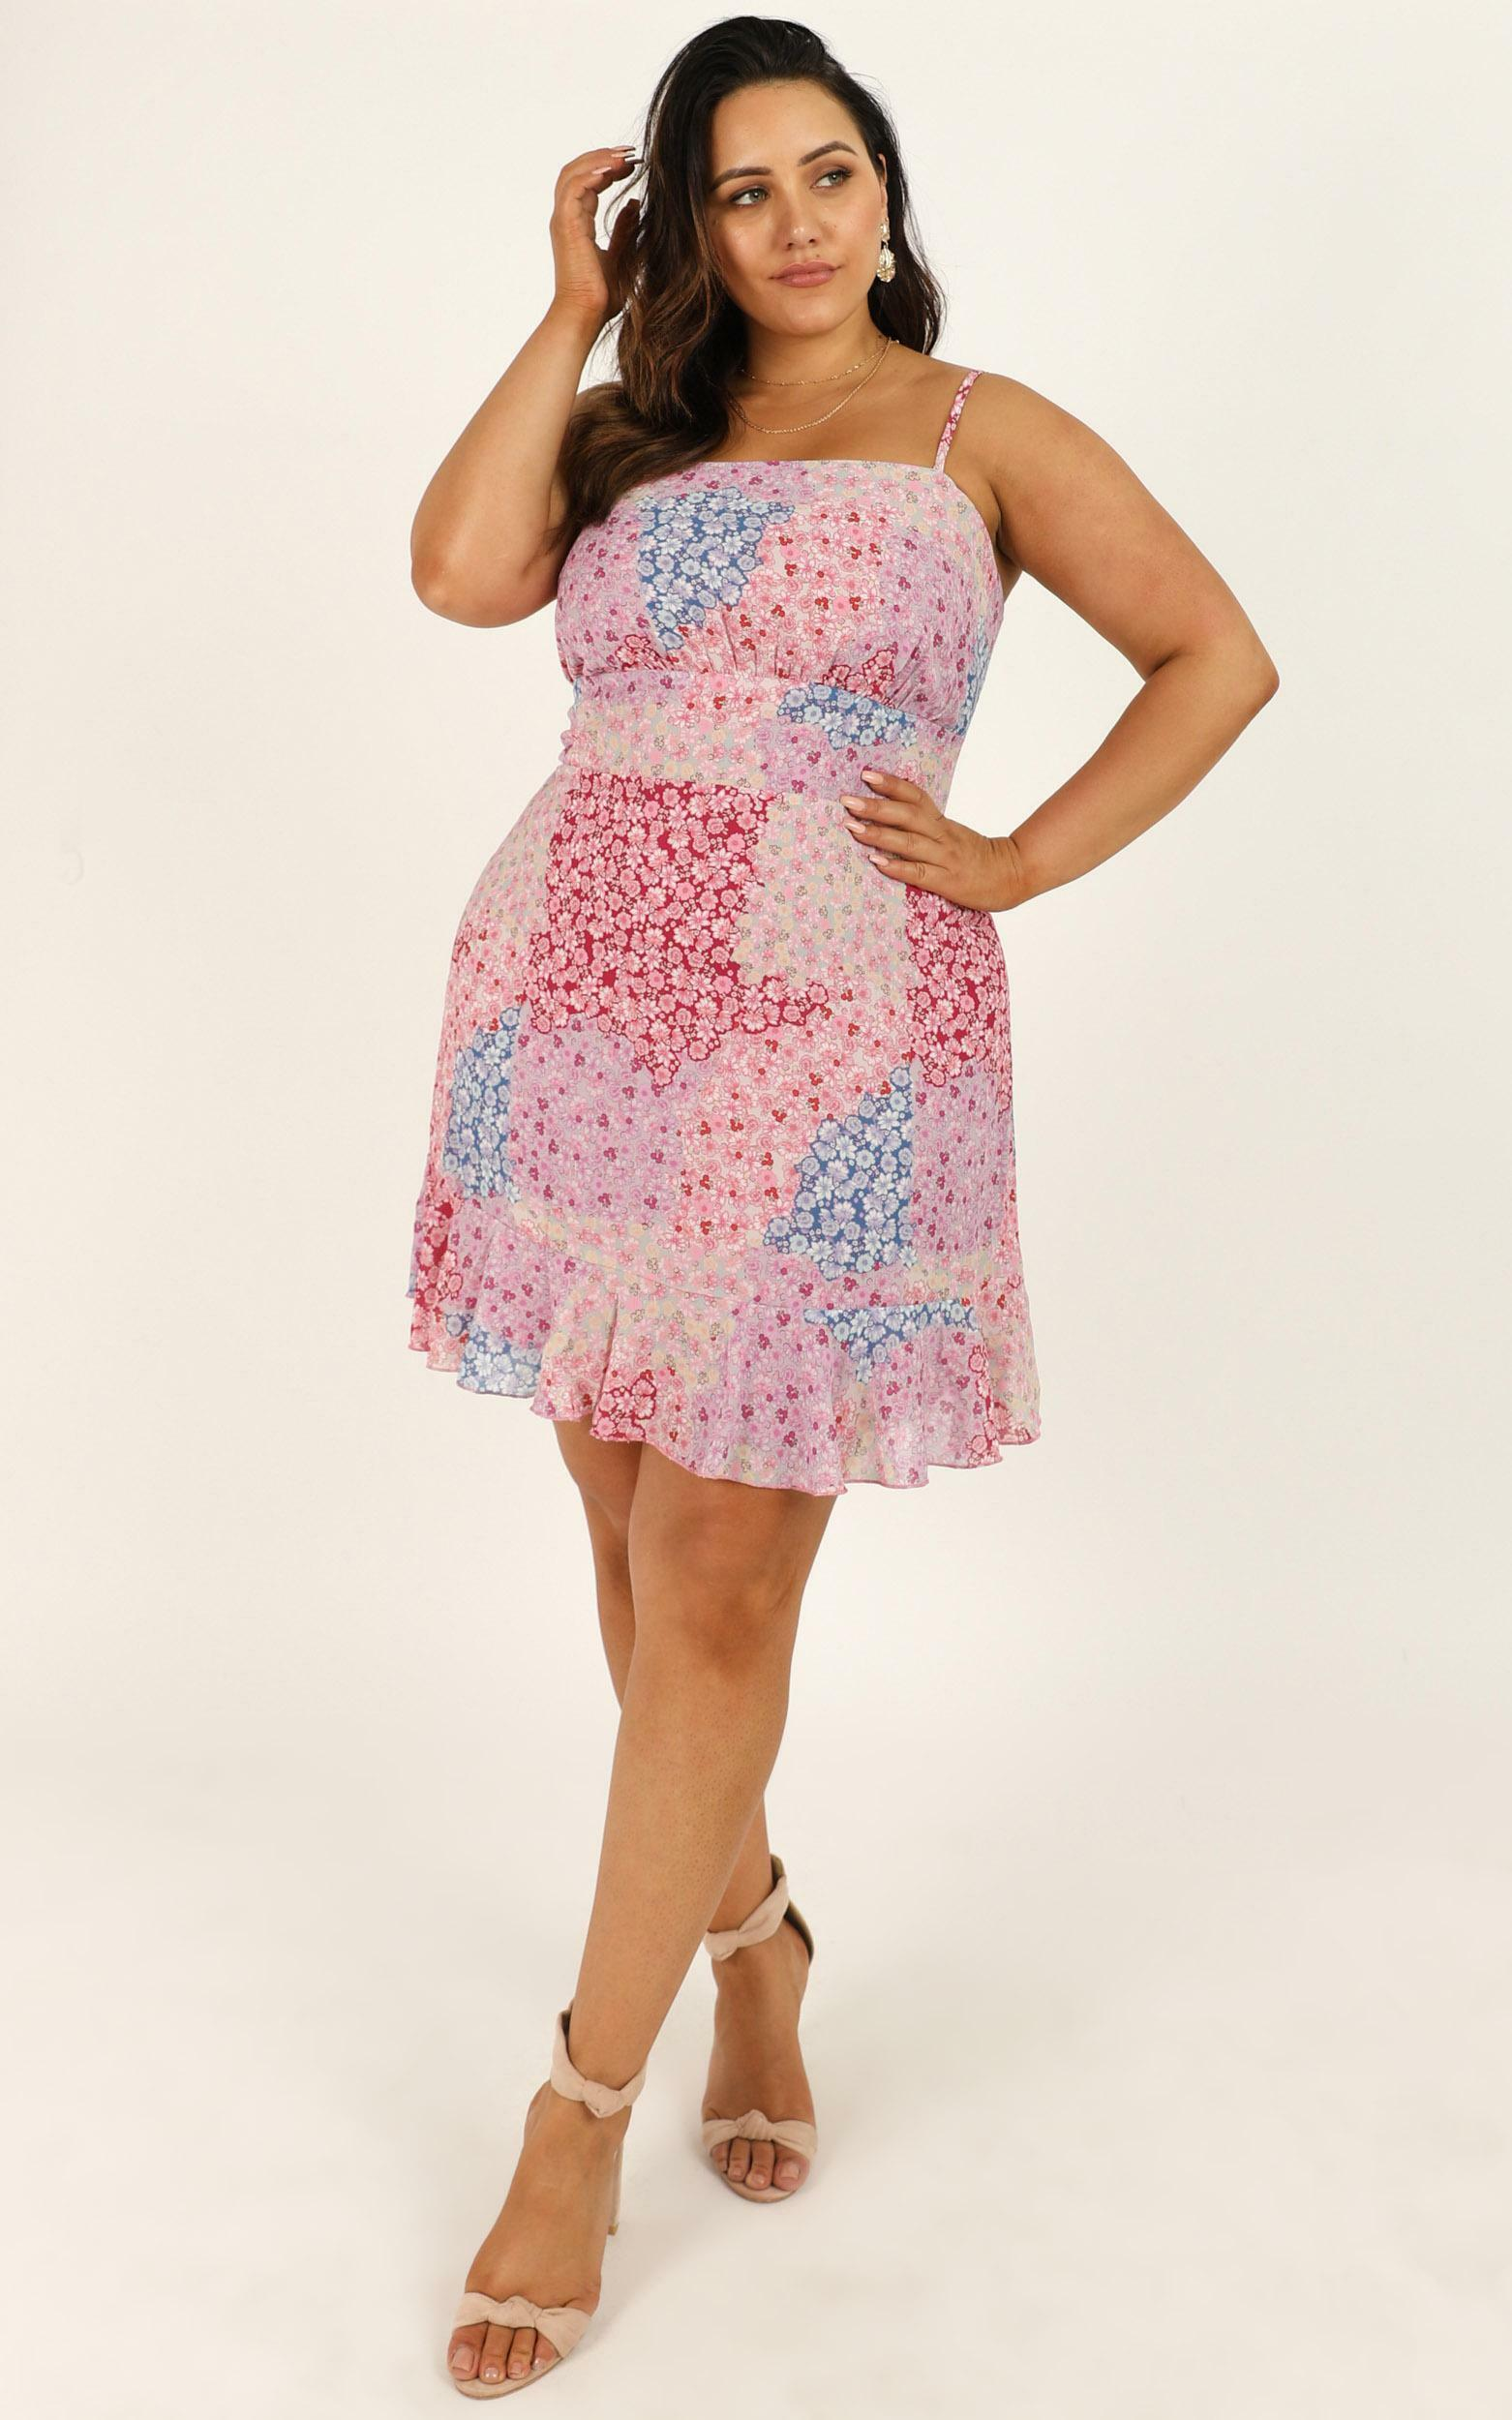 Falling in Love Dress in pink floral - 20 (XXXXL), Pink, hi-res image number null